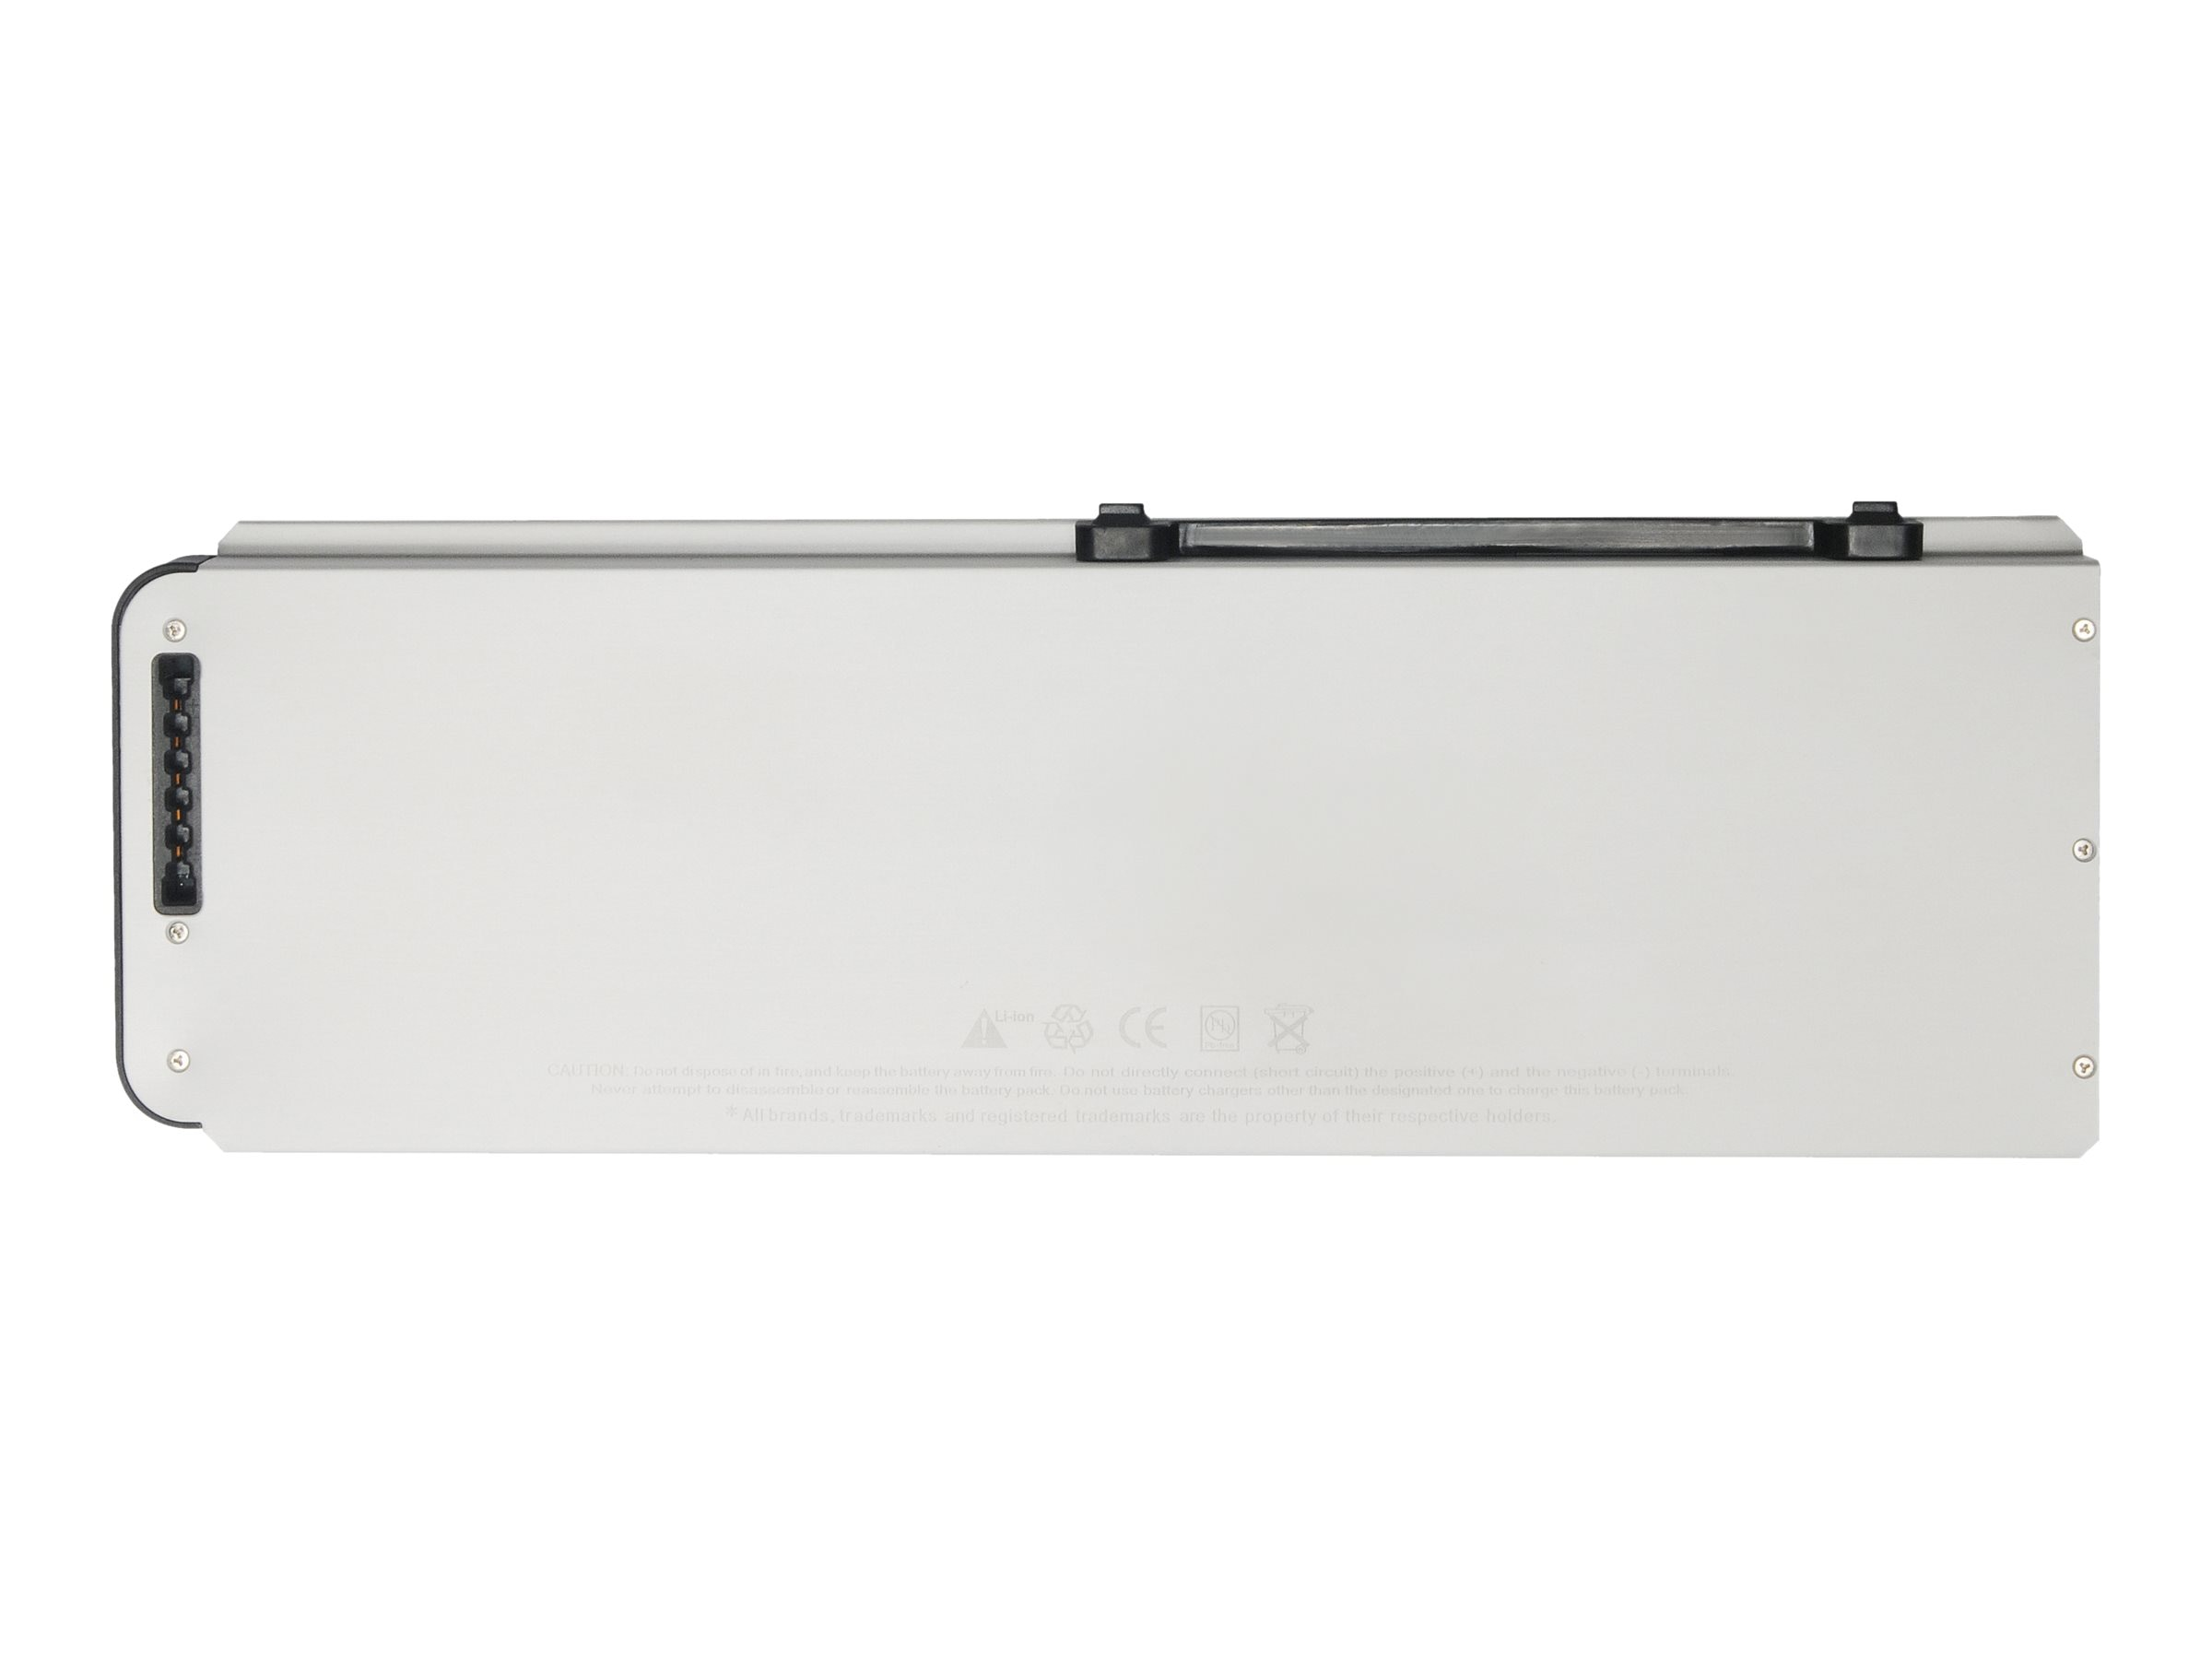 BTI 3-Cell Battery MacBook Pro 15 15.4 Aluminum MB470J A MB470LL A